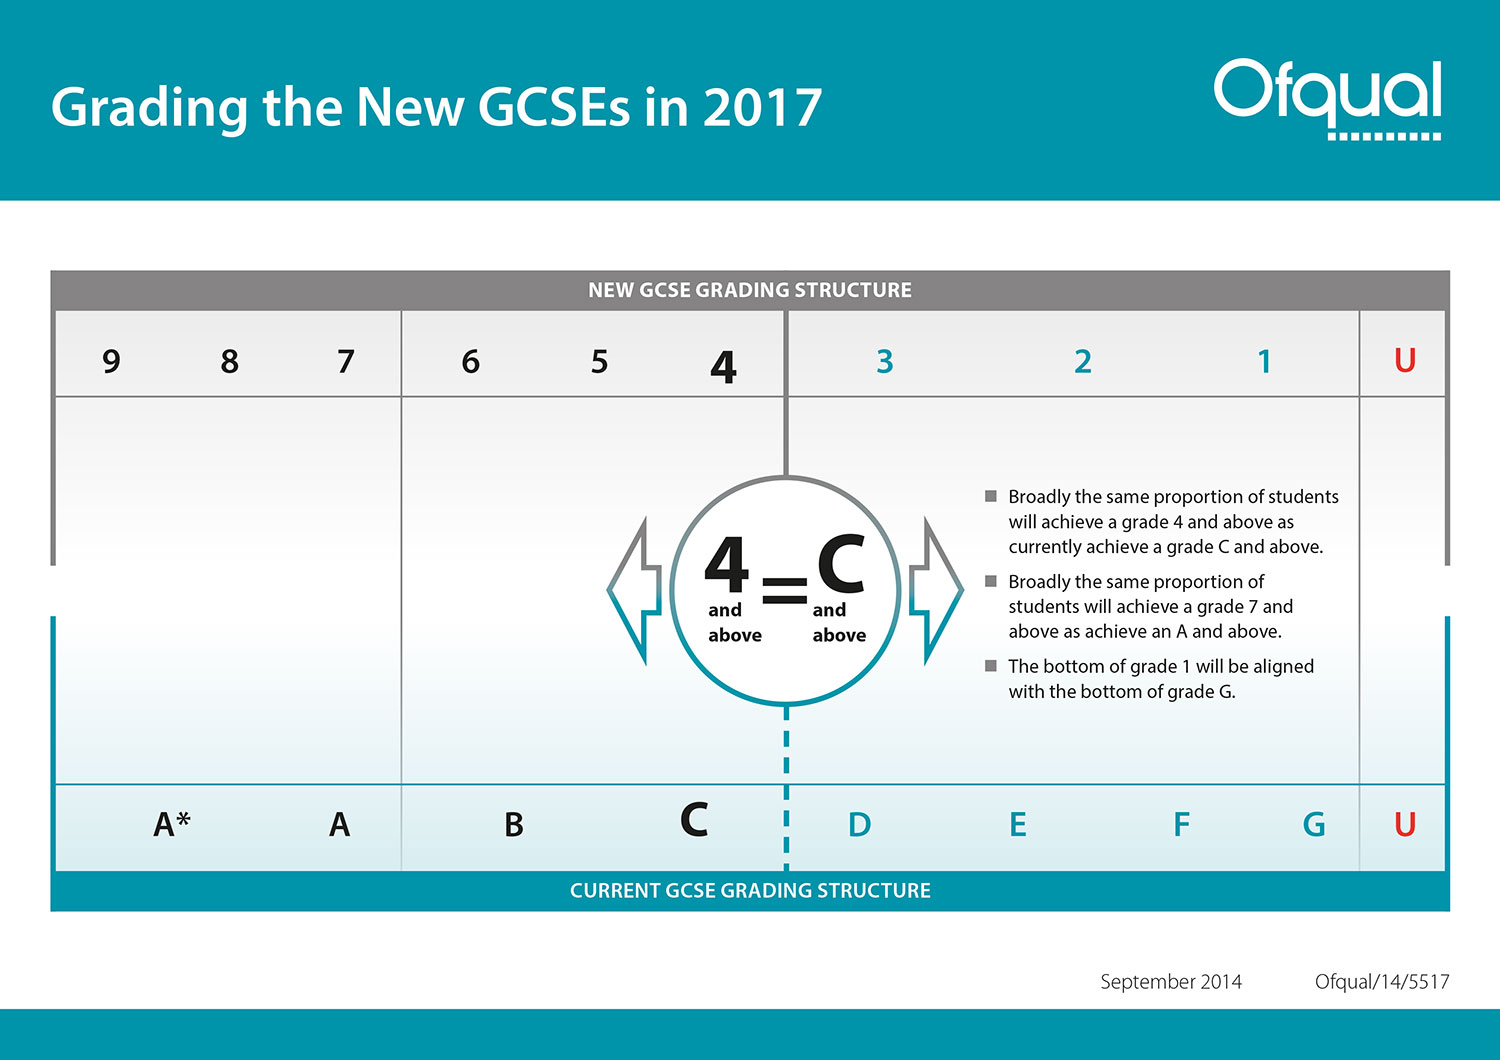 Grading the New GCSEs in 2017 (Ofqual)